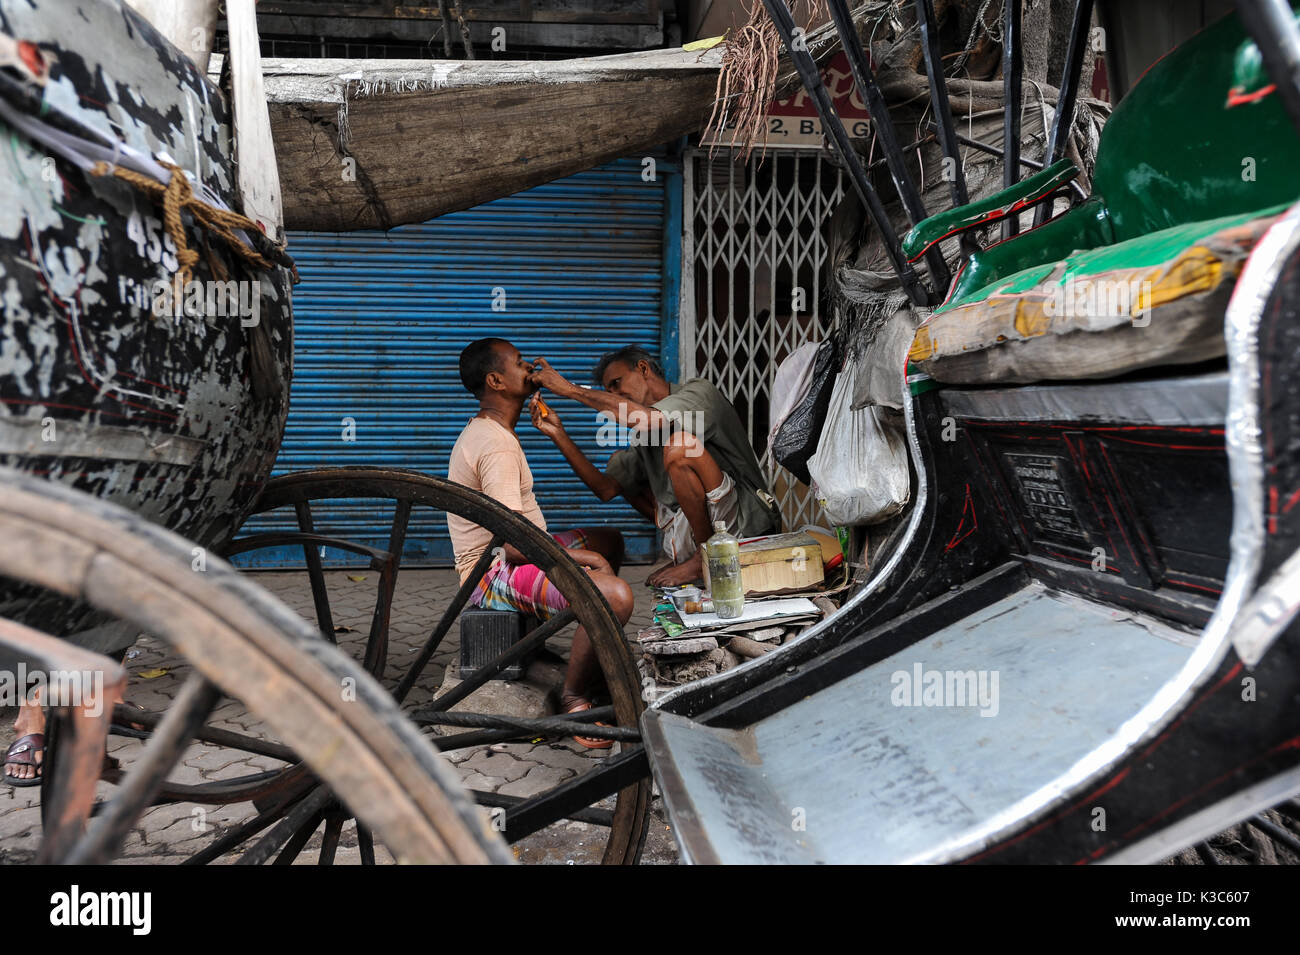 20.02.2011, Kolkata, West Bengal, India, Asia - A man gets shaved between rickshaws at a roadside in Kolkata. - Stock Image